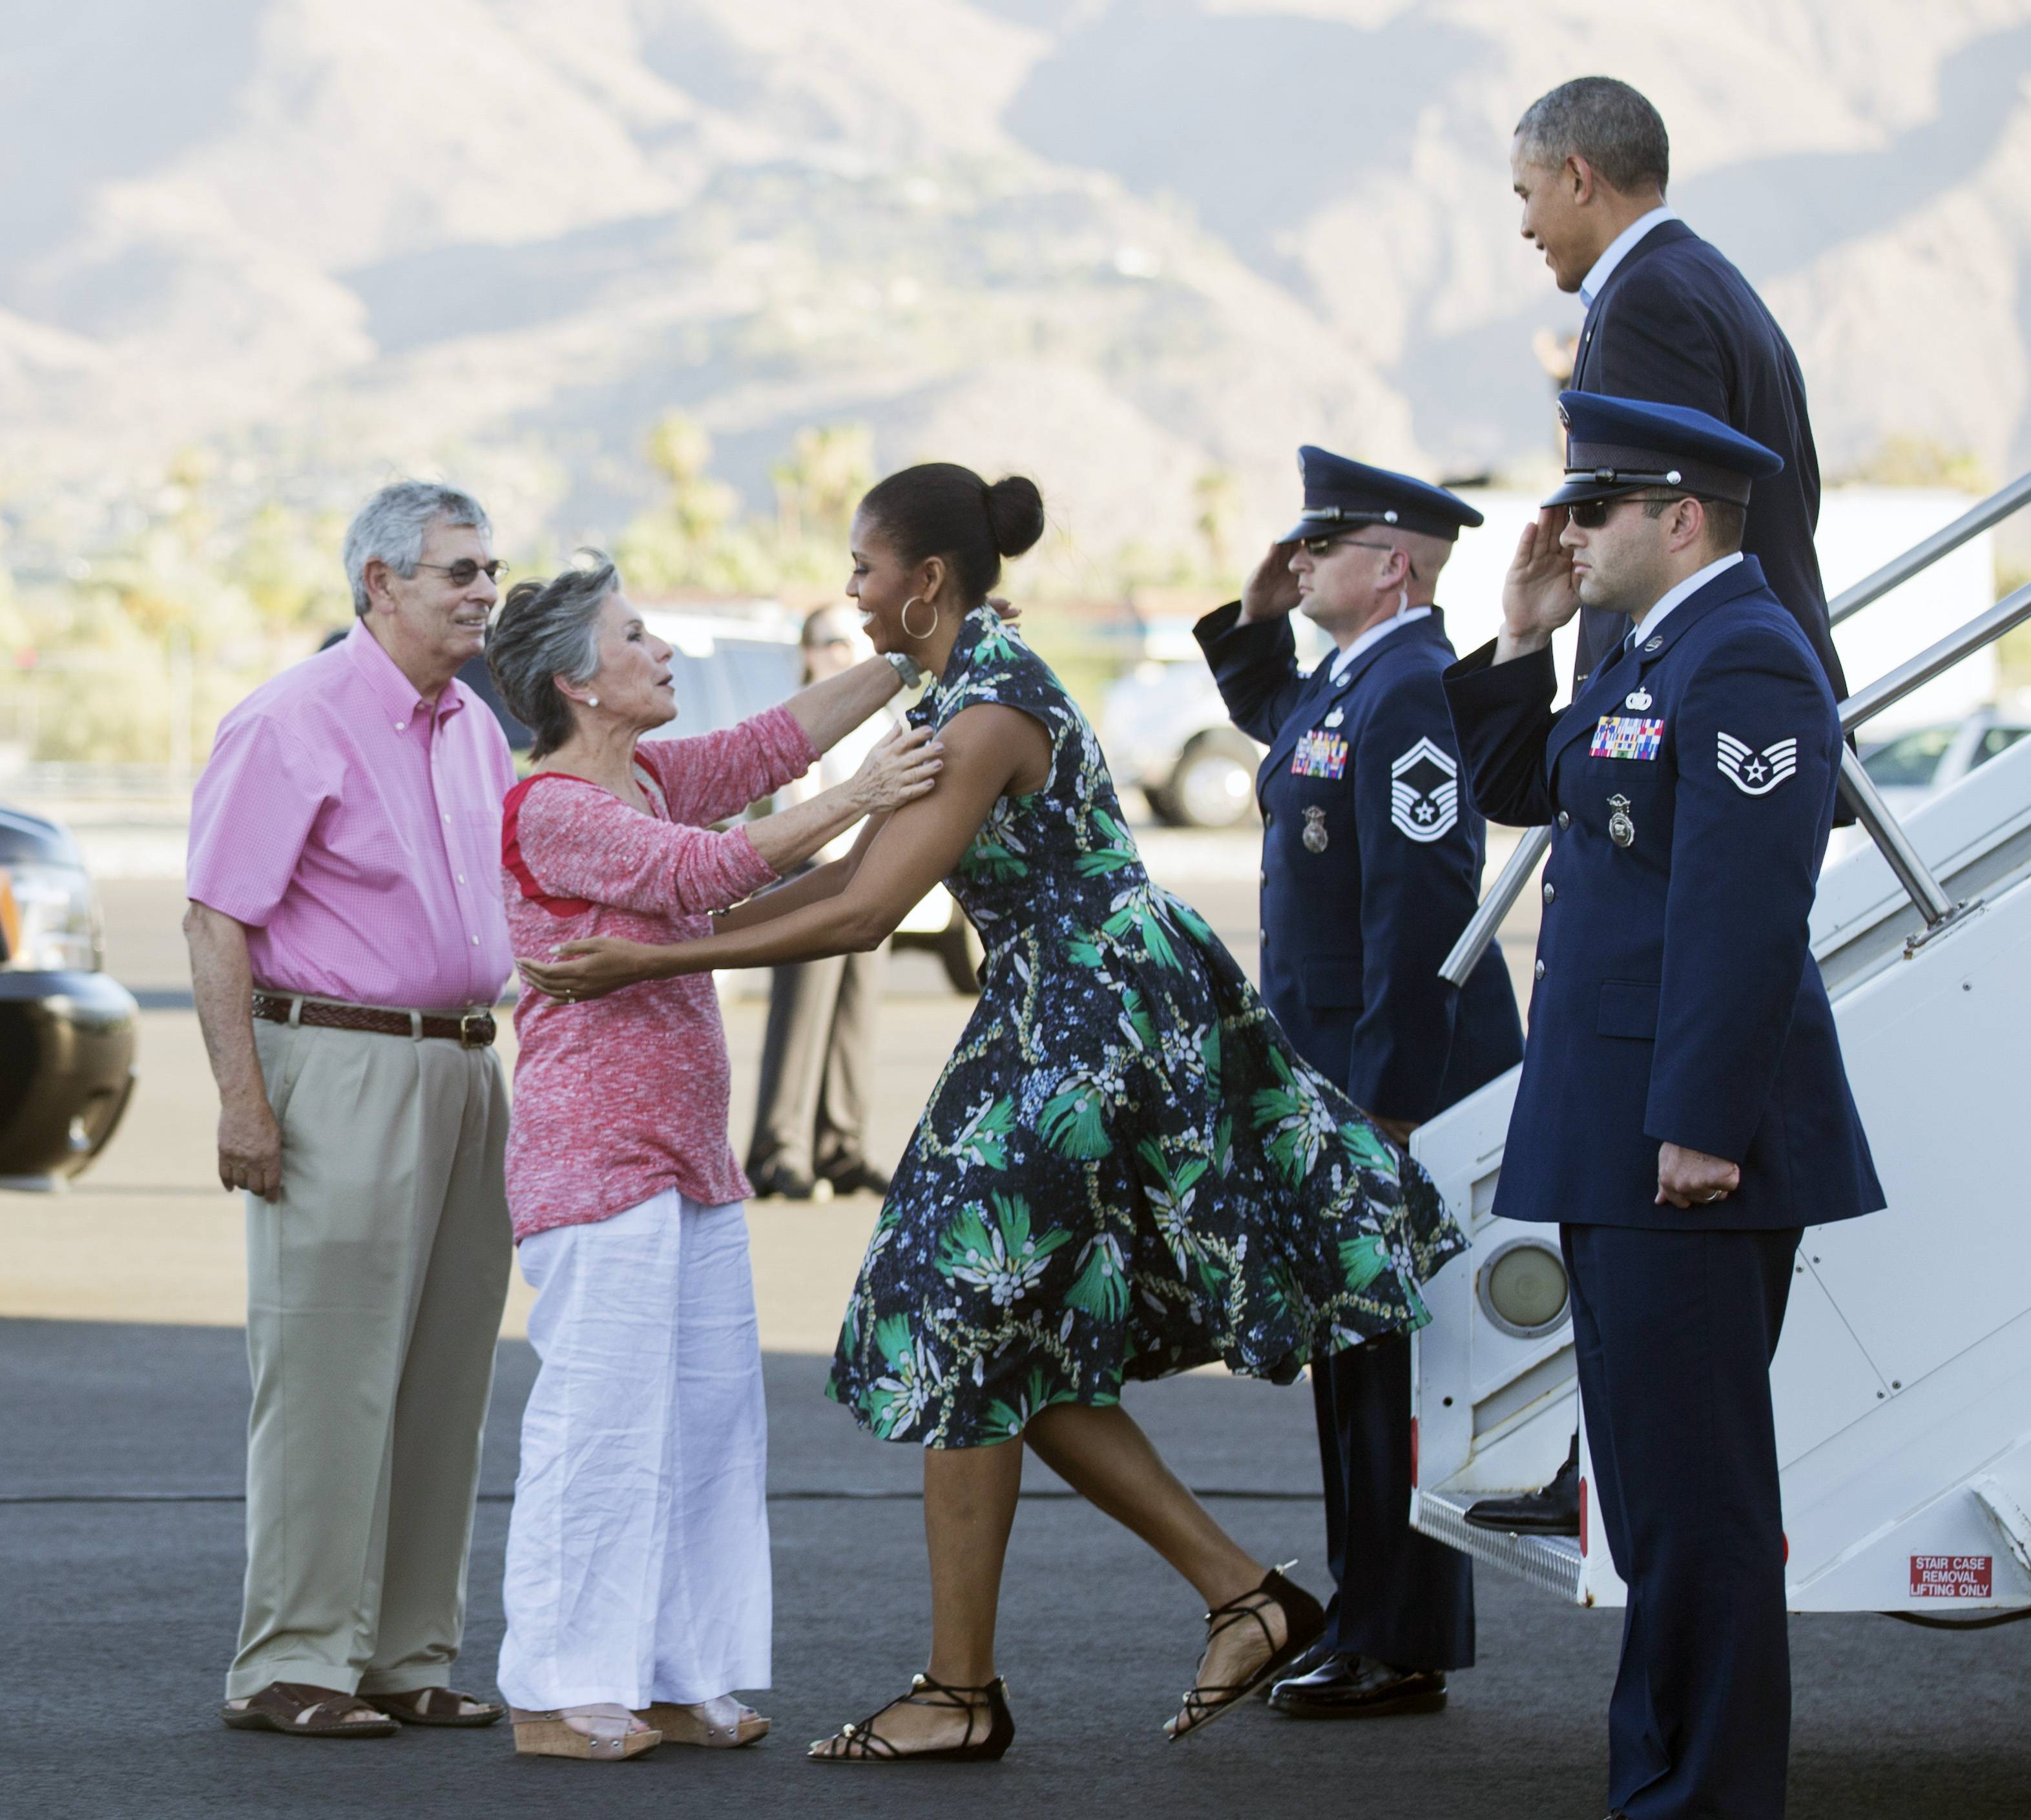 President Barack Obama and first lady Michelle Obama, are greeted on the tarmac by Sen. Barbara Boxer, D-Calif., second from left, and her husband Stewart Boxer, left, as they arrive on Friday in Palm Springs, Calif. -- where the Obamas escaped on vacation for Father's Day weekend.